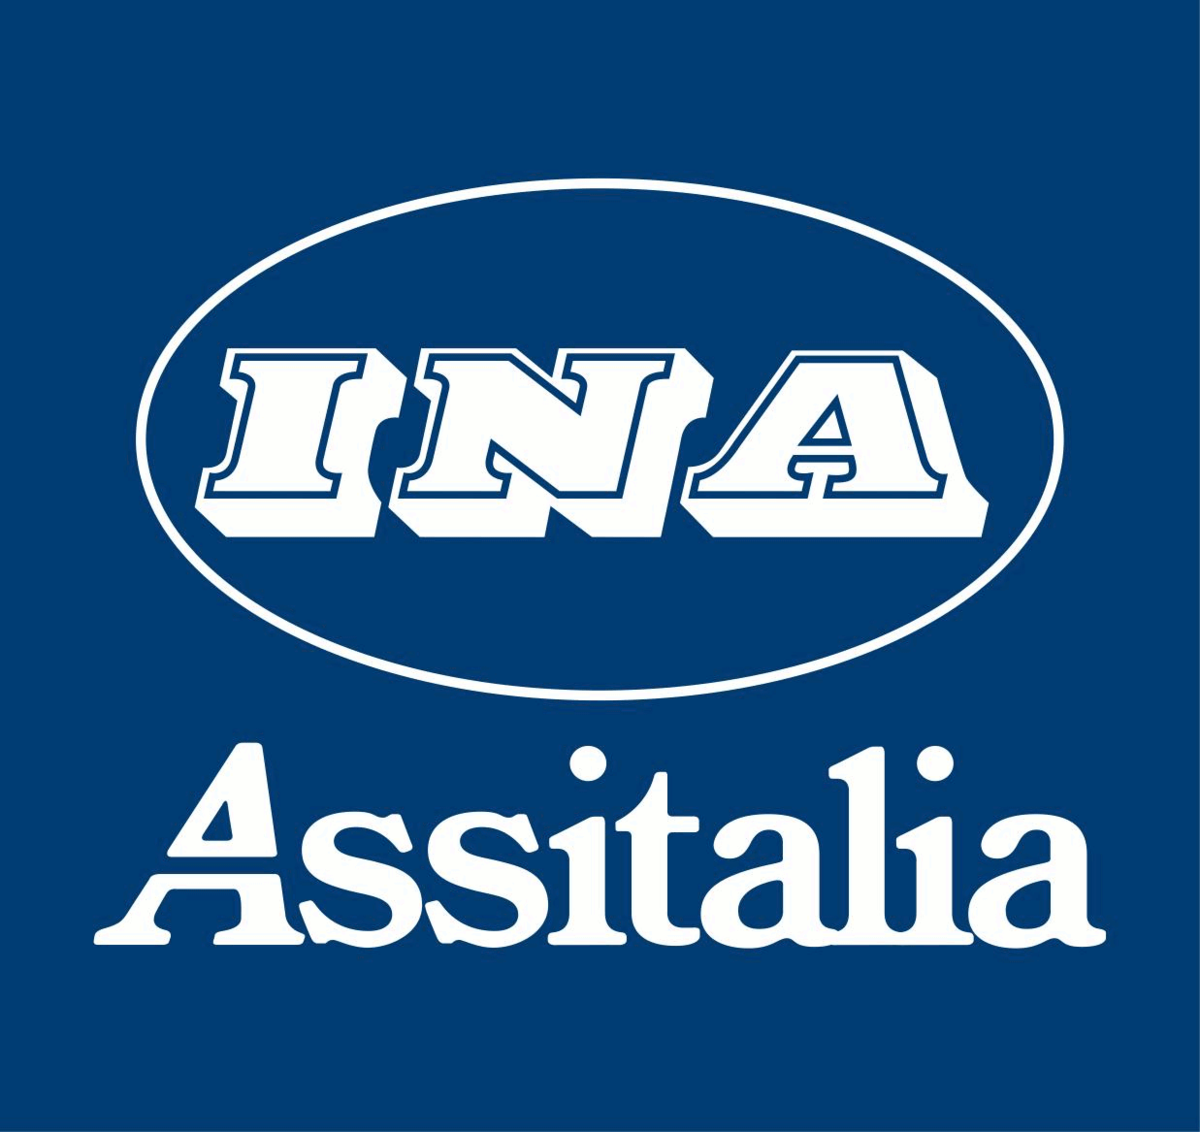 ina assitalia wikipedia